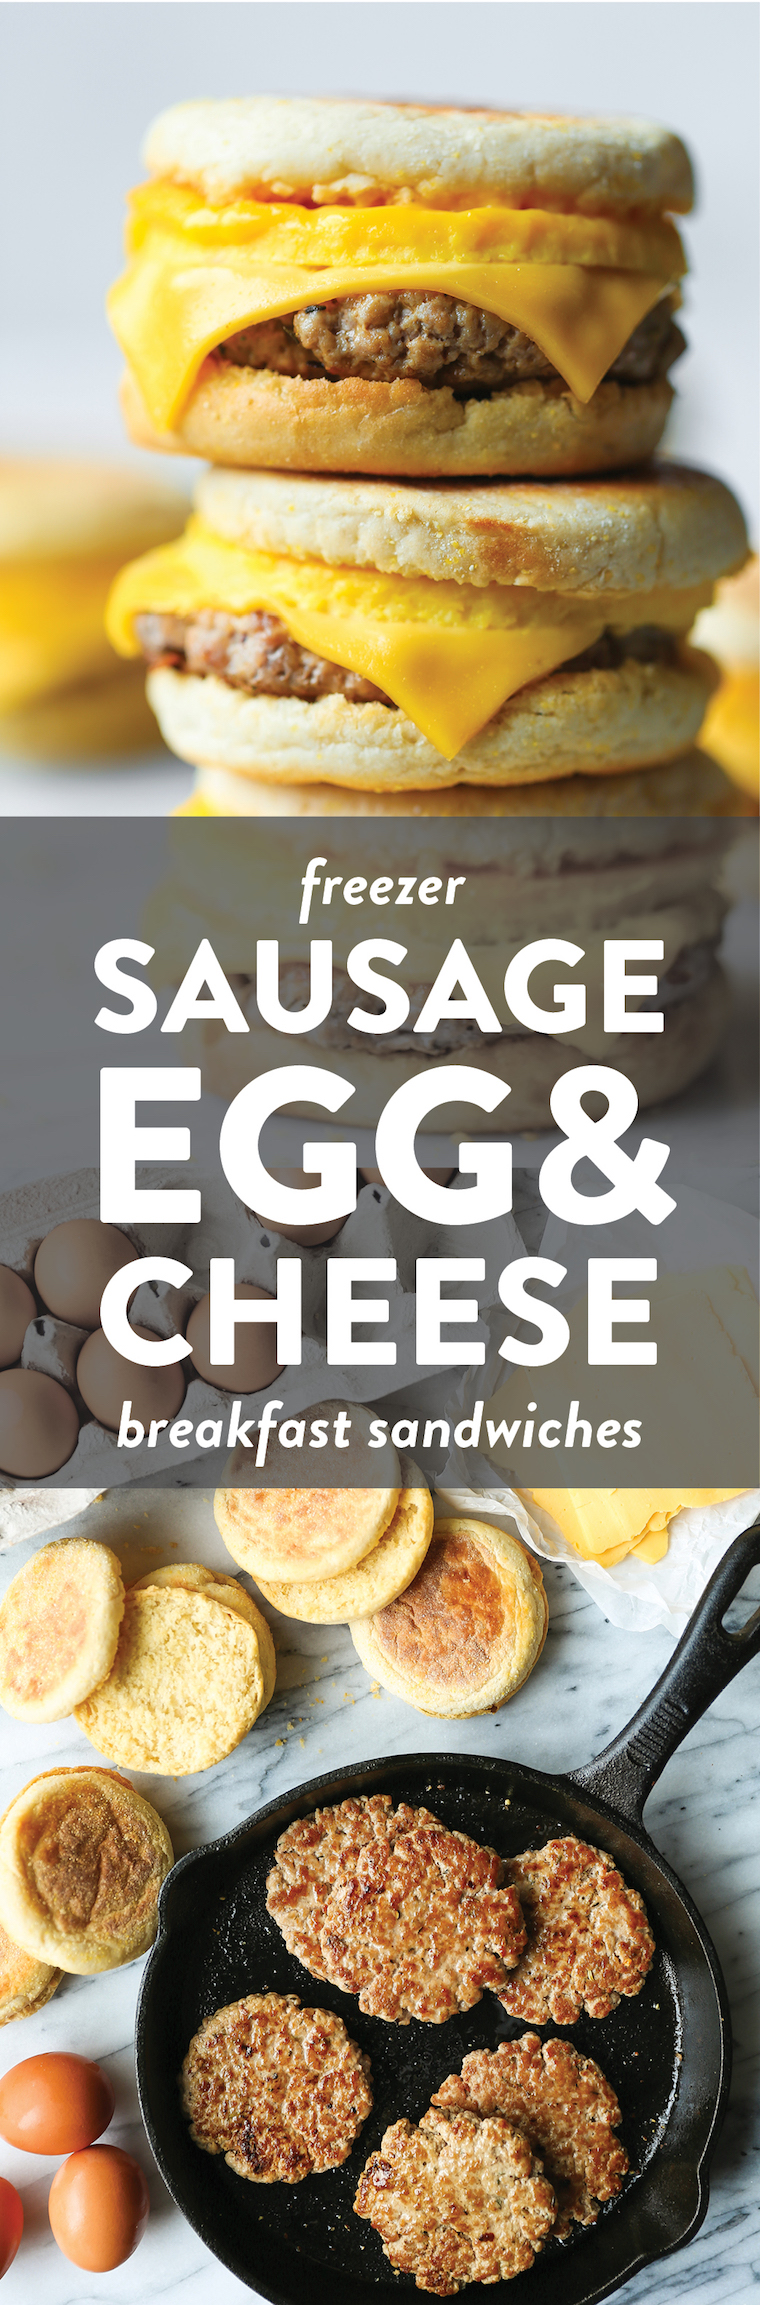 Freezer Sausage, Egg, and Cheese Breakfast Sandwiches - Best ever freezer-friendly breakfast sandwiches for those busy mornings! Never skip breakfast again!